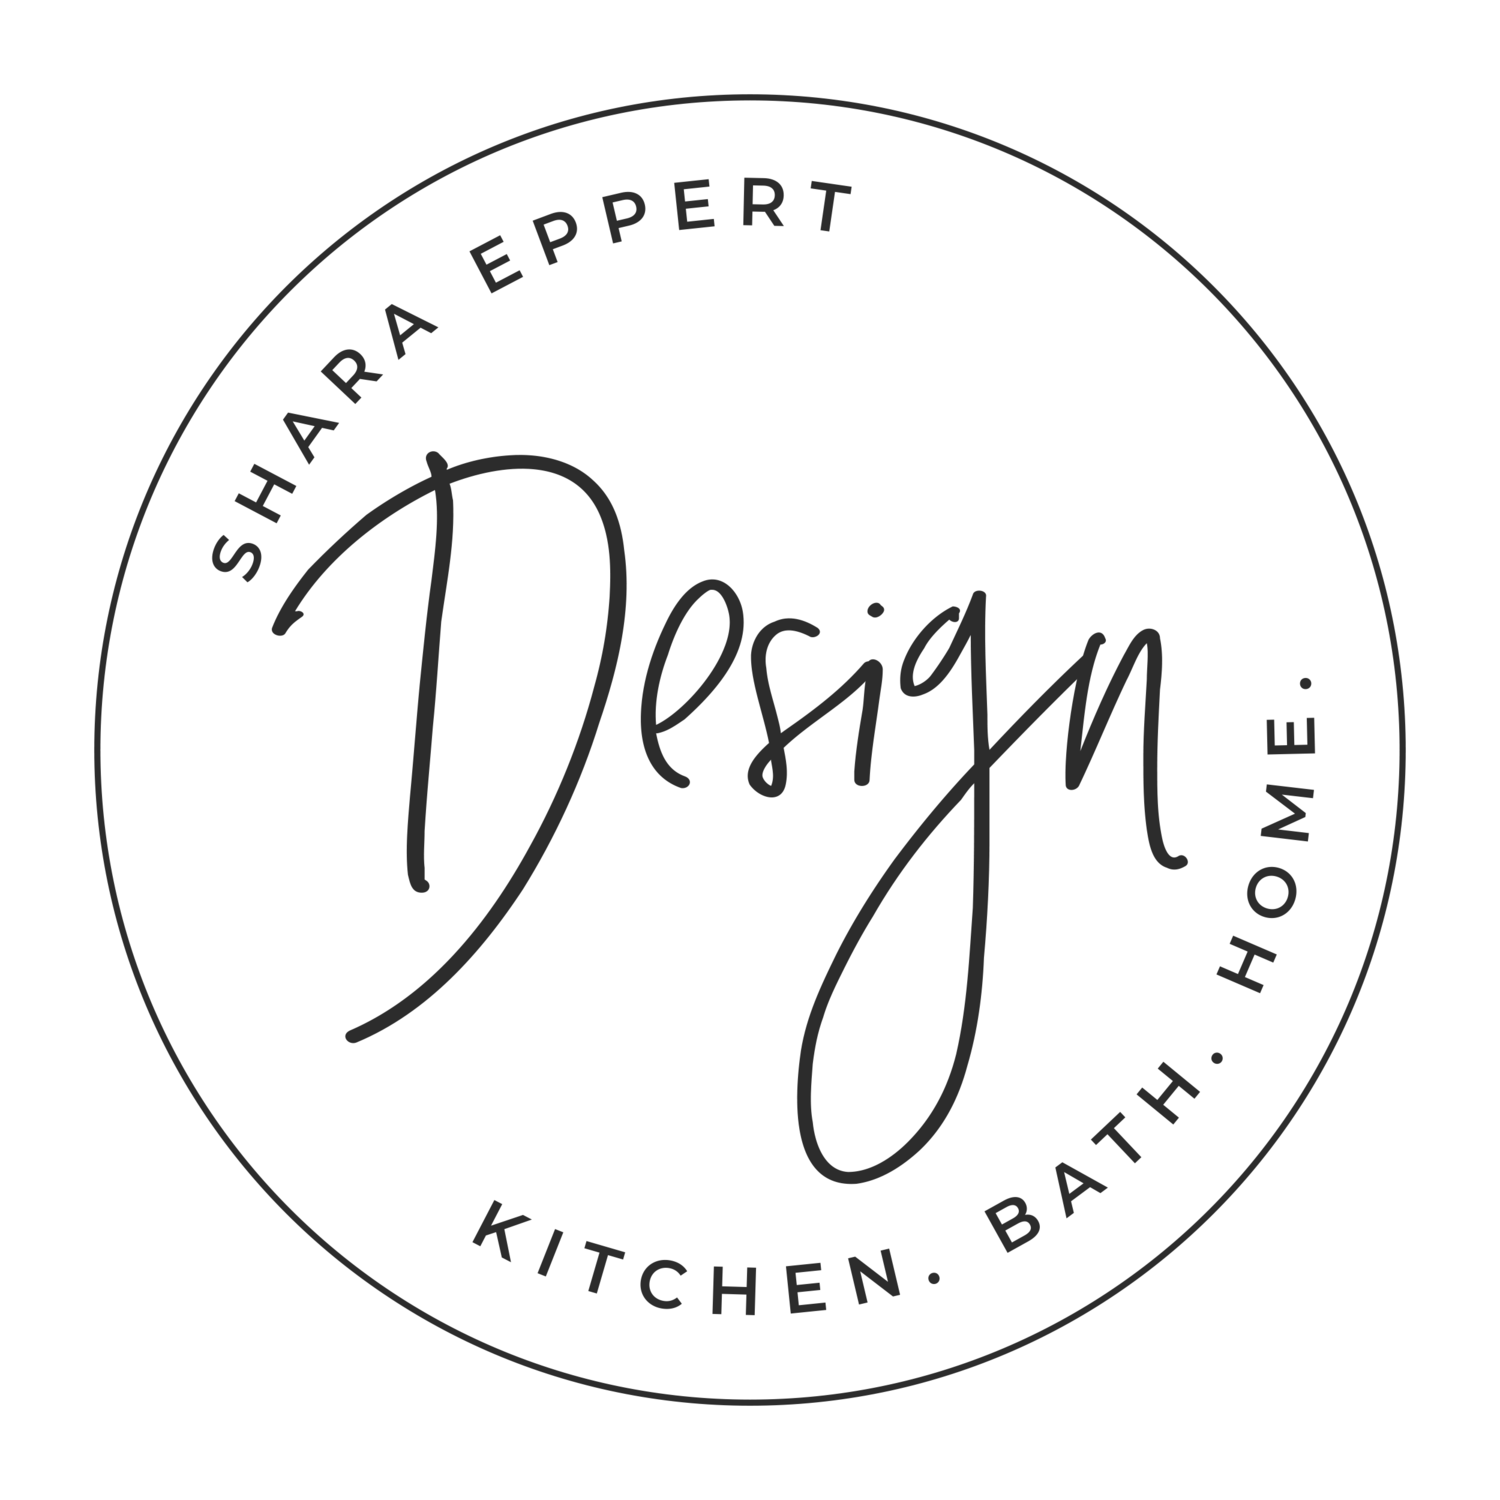 Shara Eppert Design: Honolulu Interior Designer, specializing in kitchen, bathroom, cabinet design & planning